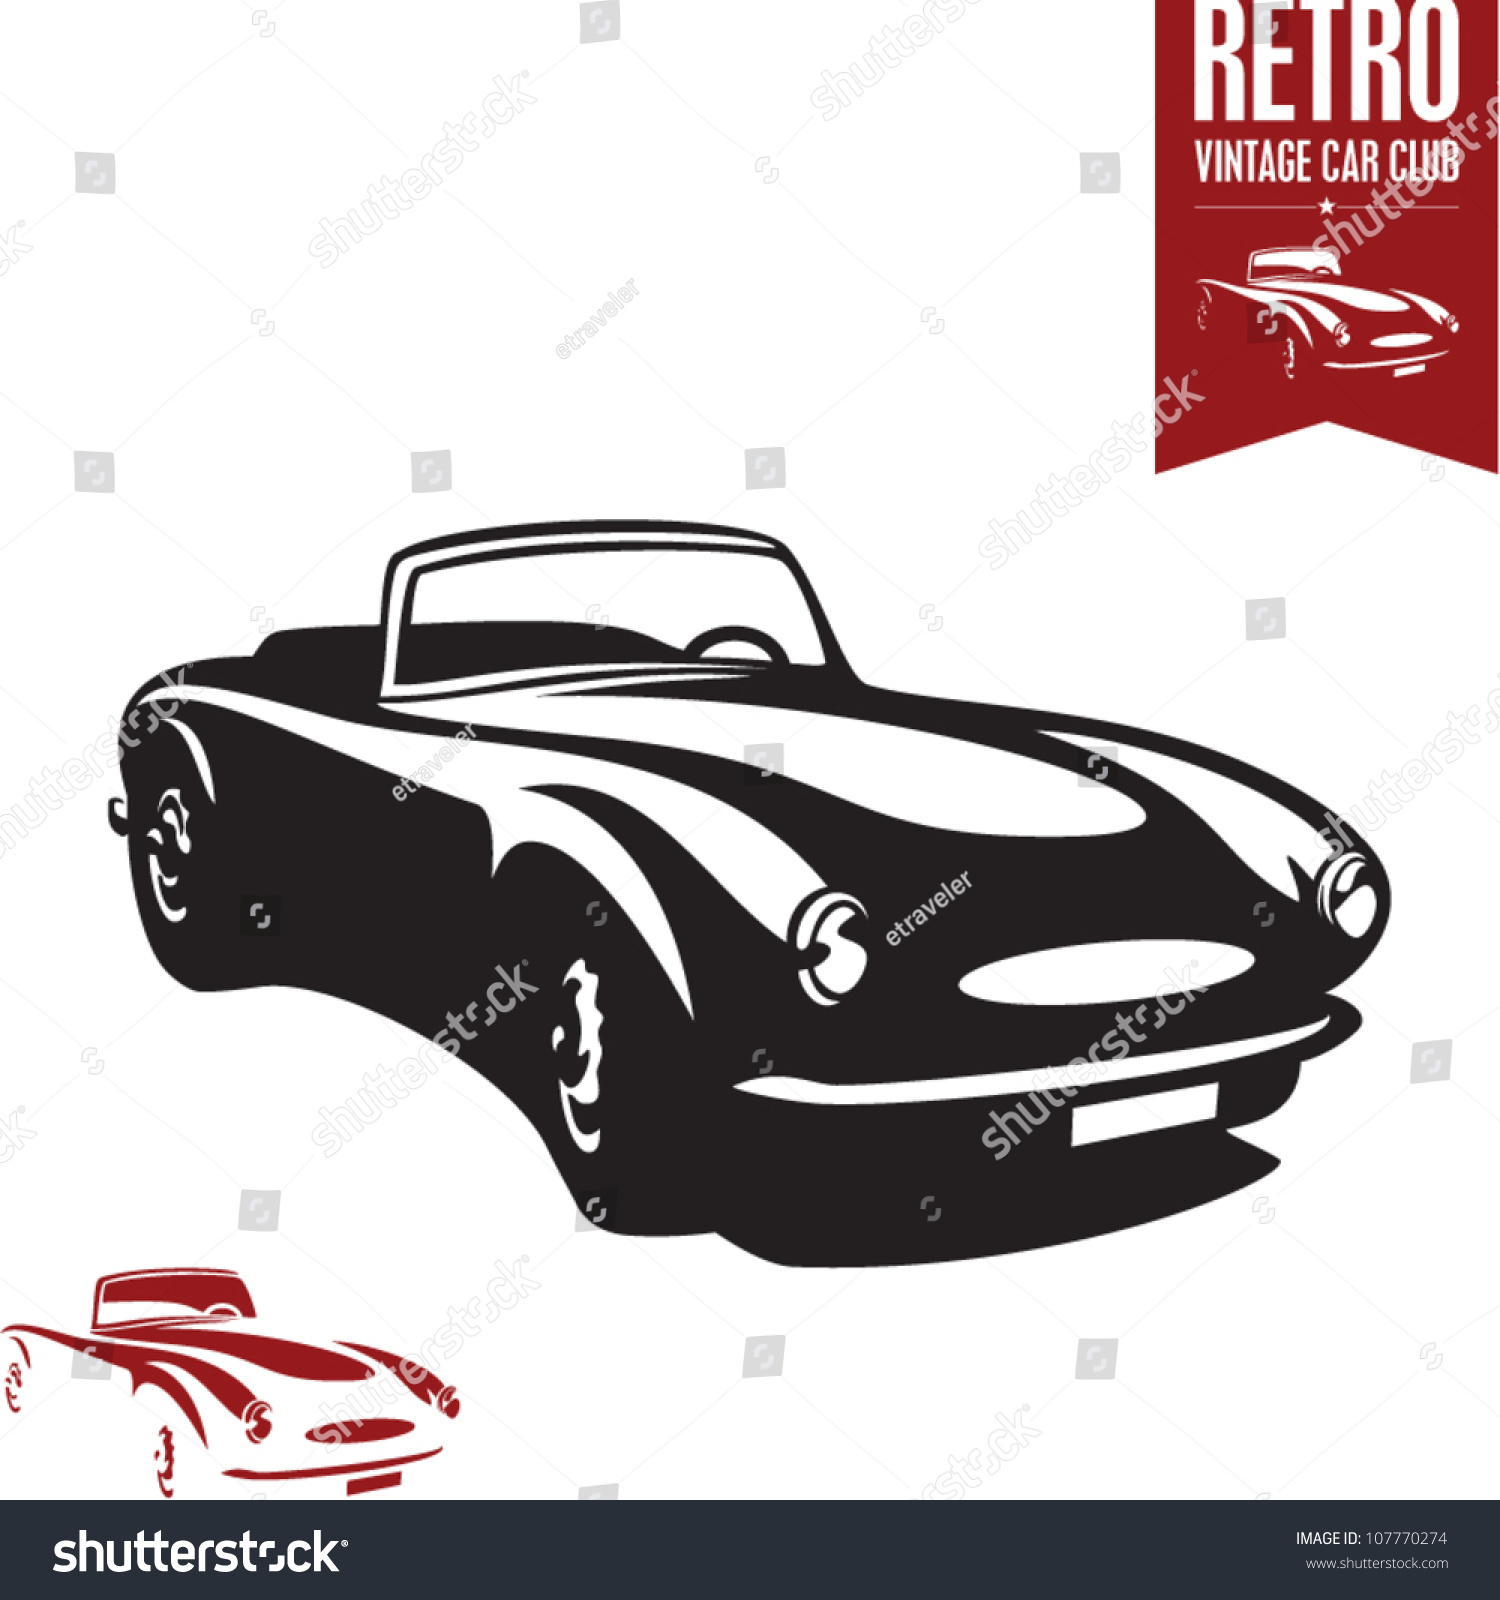 Retro Car. Vintage Car. Sport Car. Stock Vector Illustration 107770274